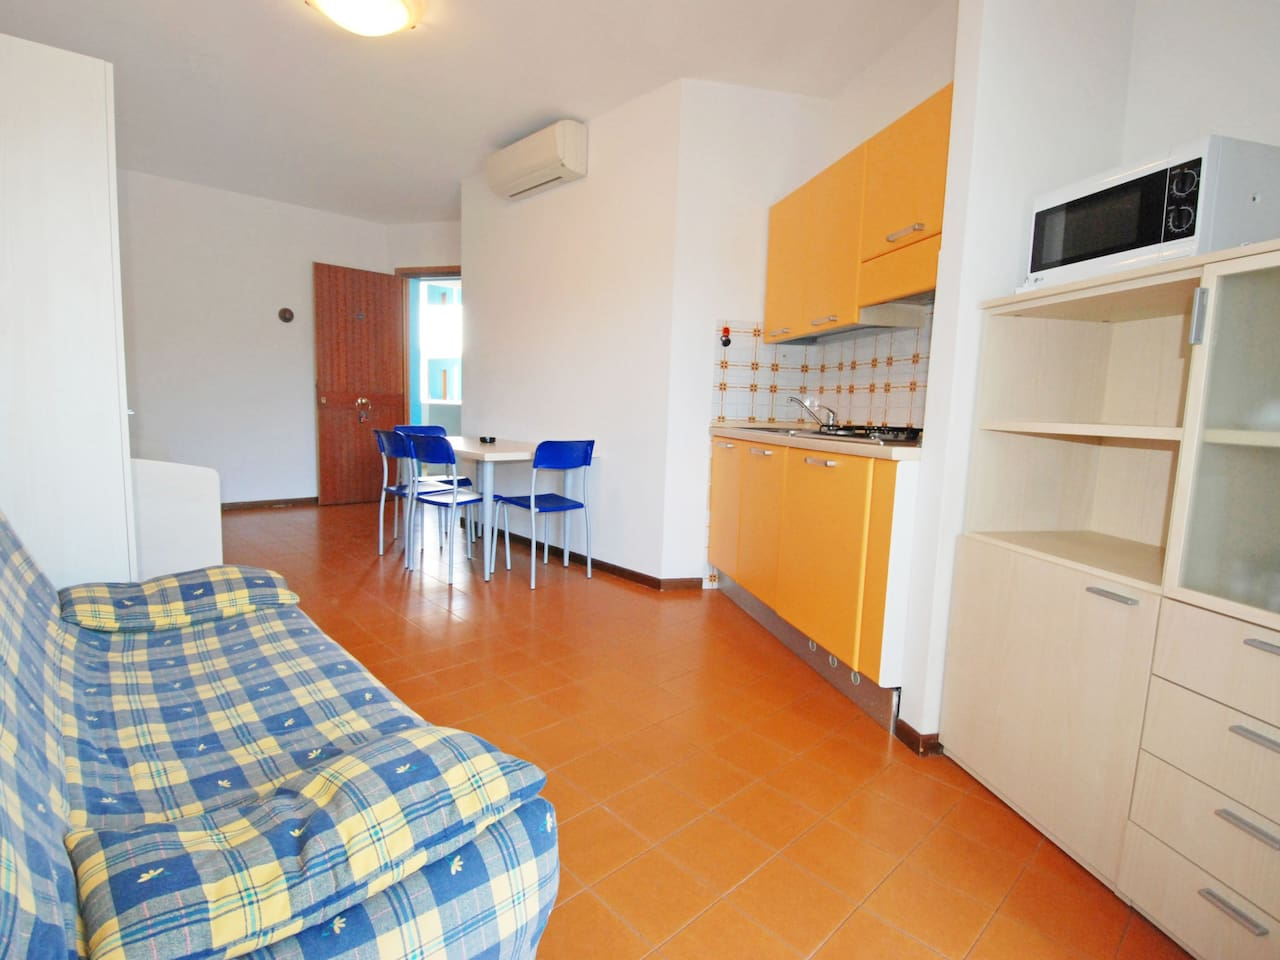 2-room apartment 52 m² Residence in Bibione